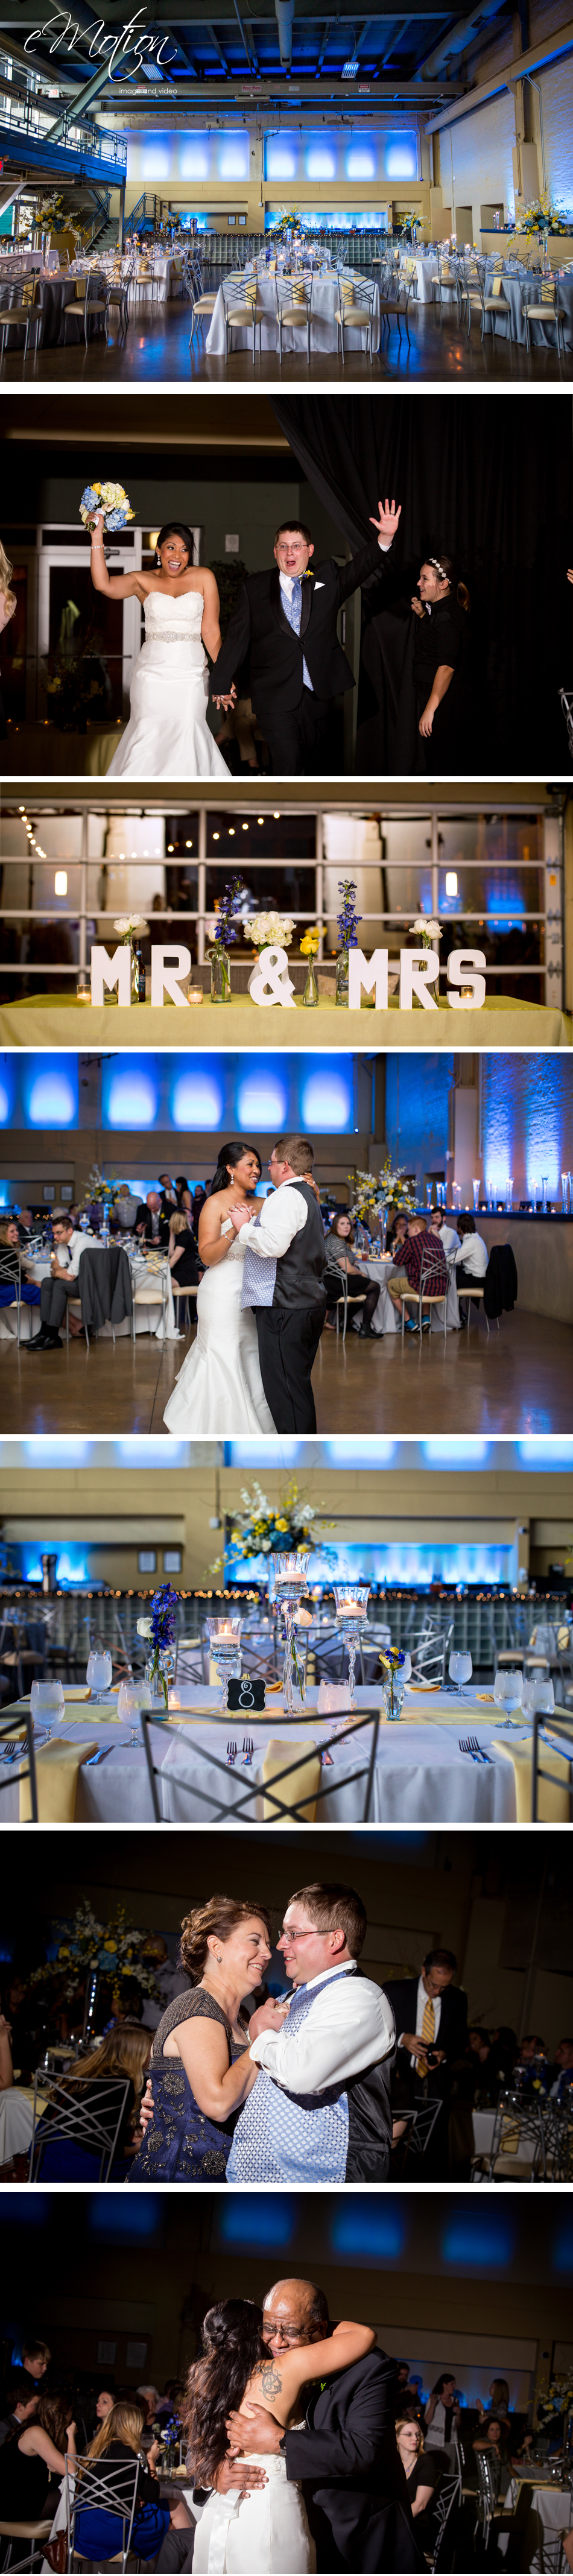 Ice House Wedding eMotion image and video